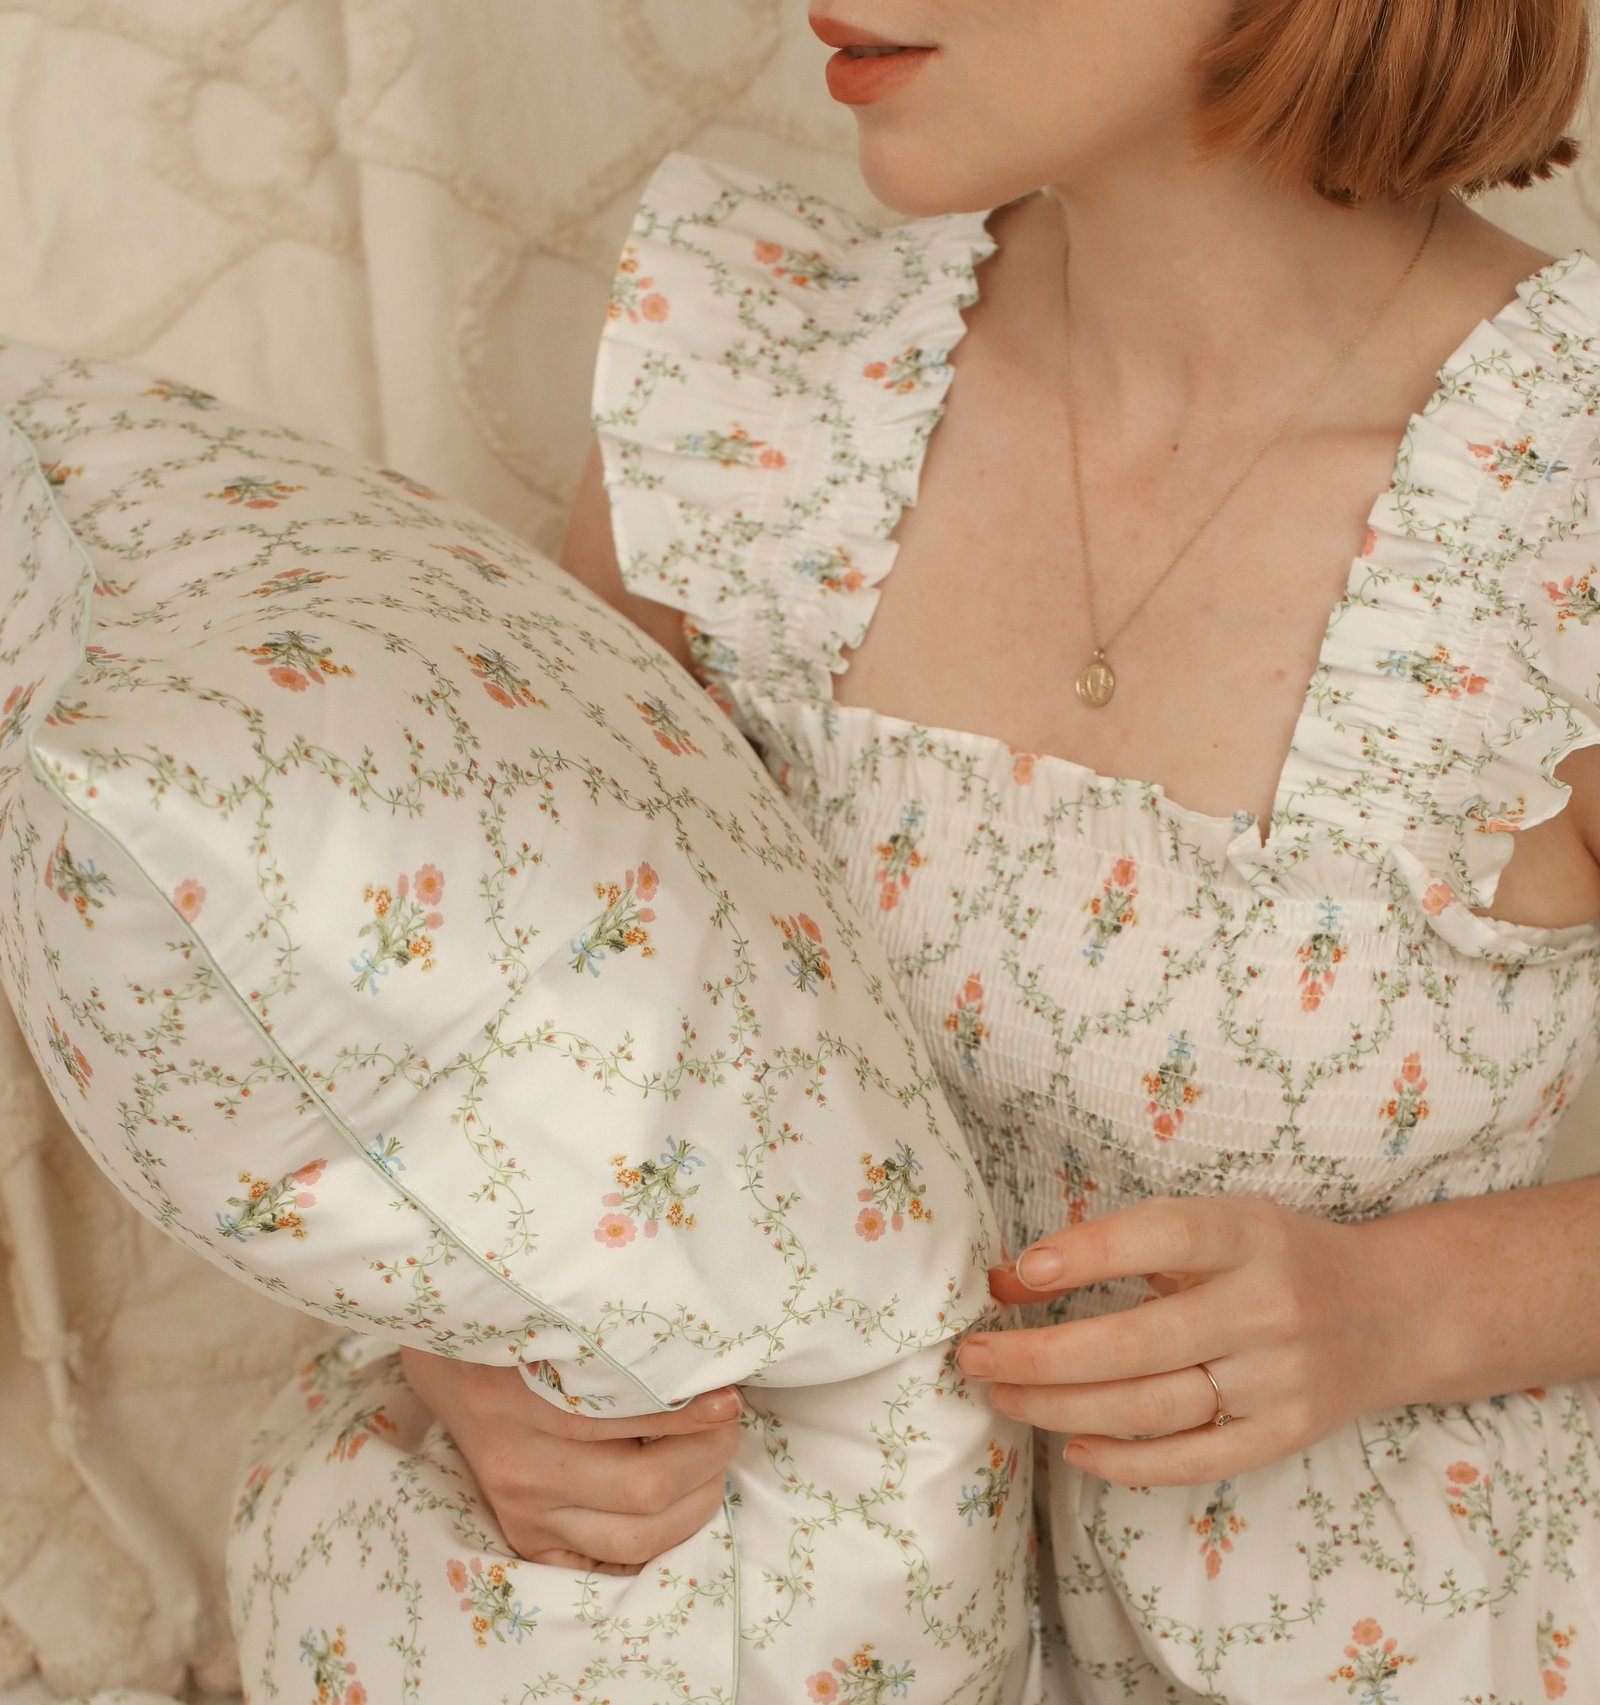 Hill House Sisi Silk Pillowcase   A Few Must-Have Spring Accessories